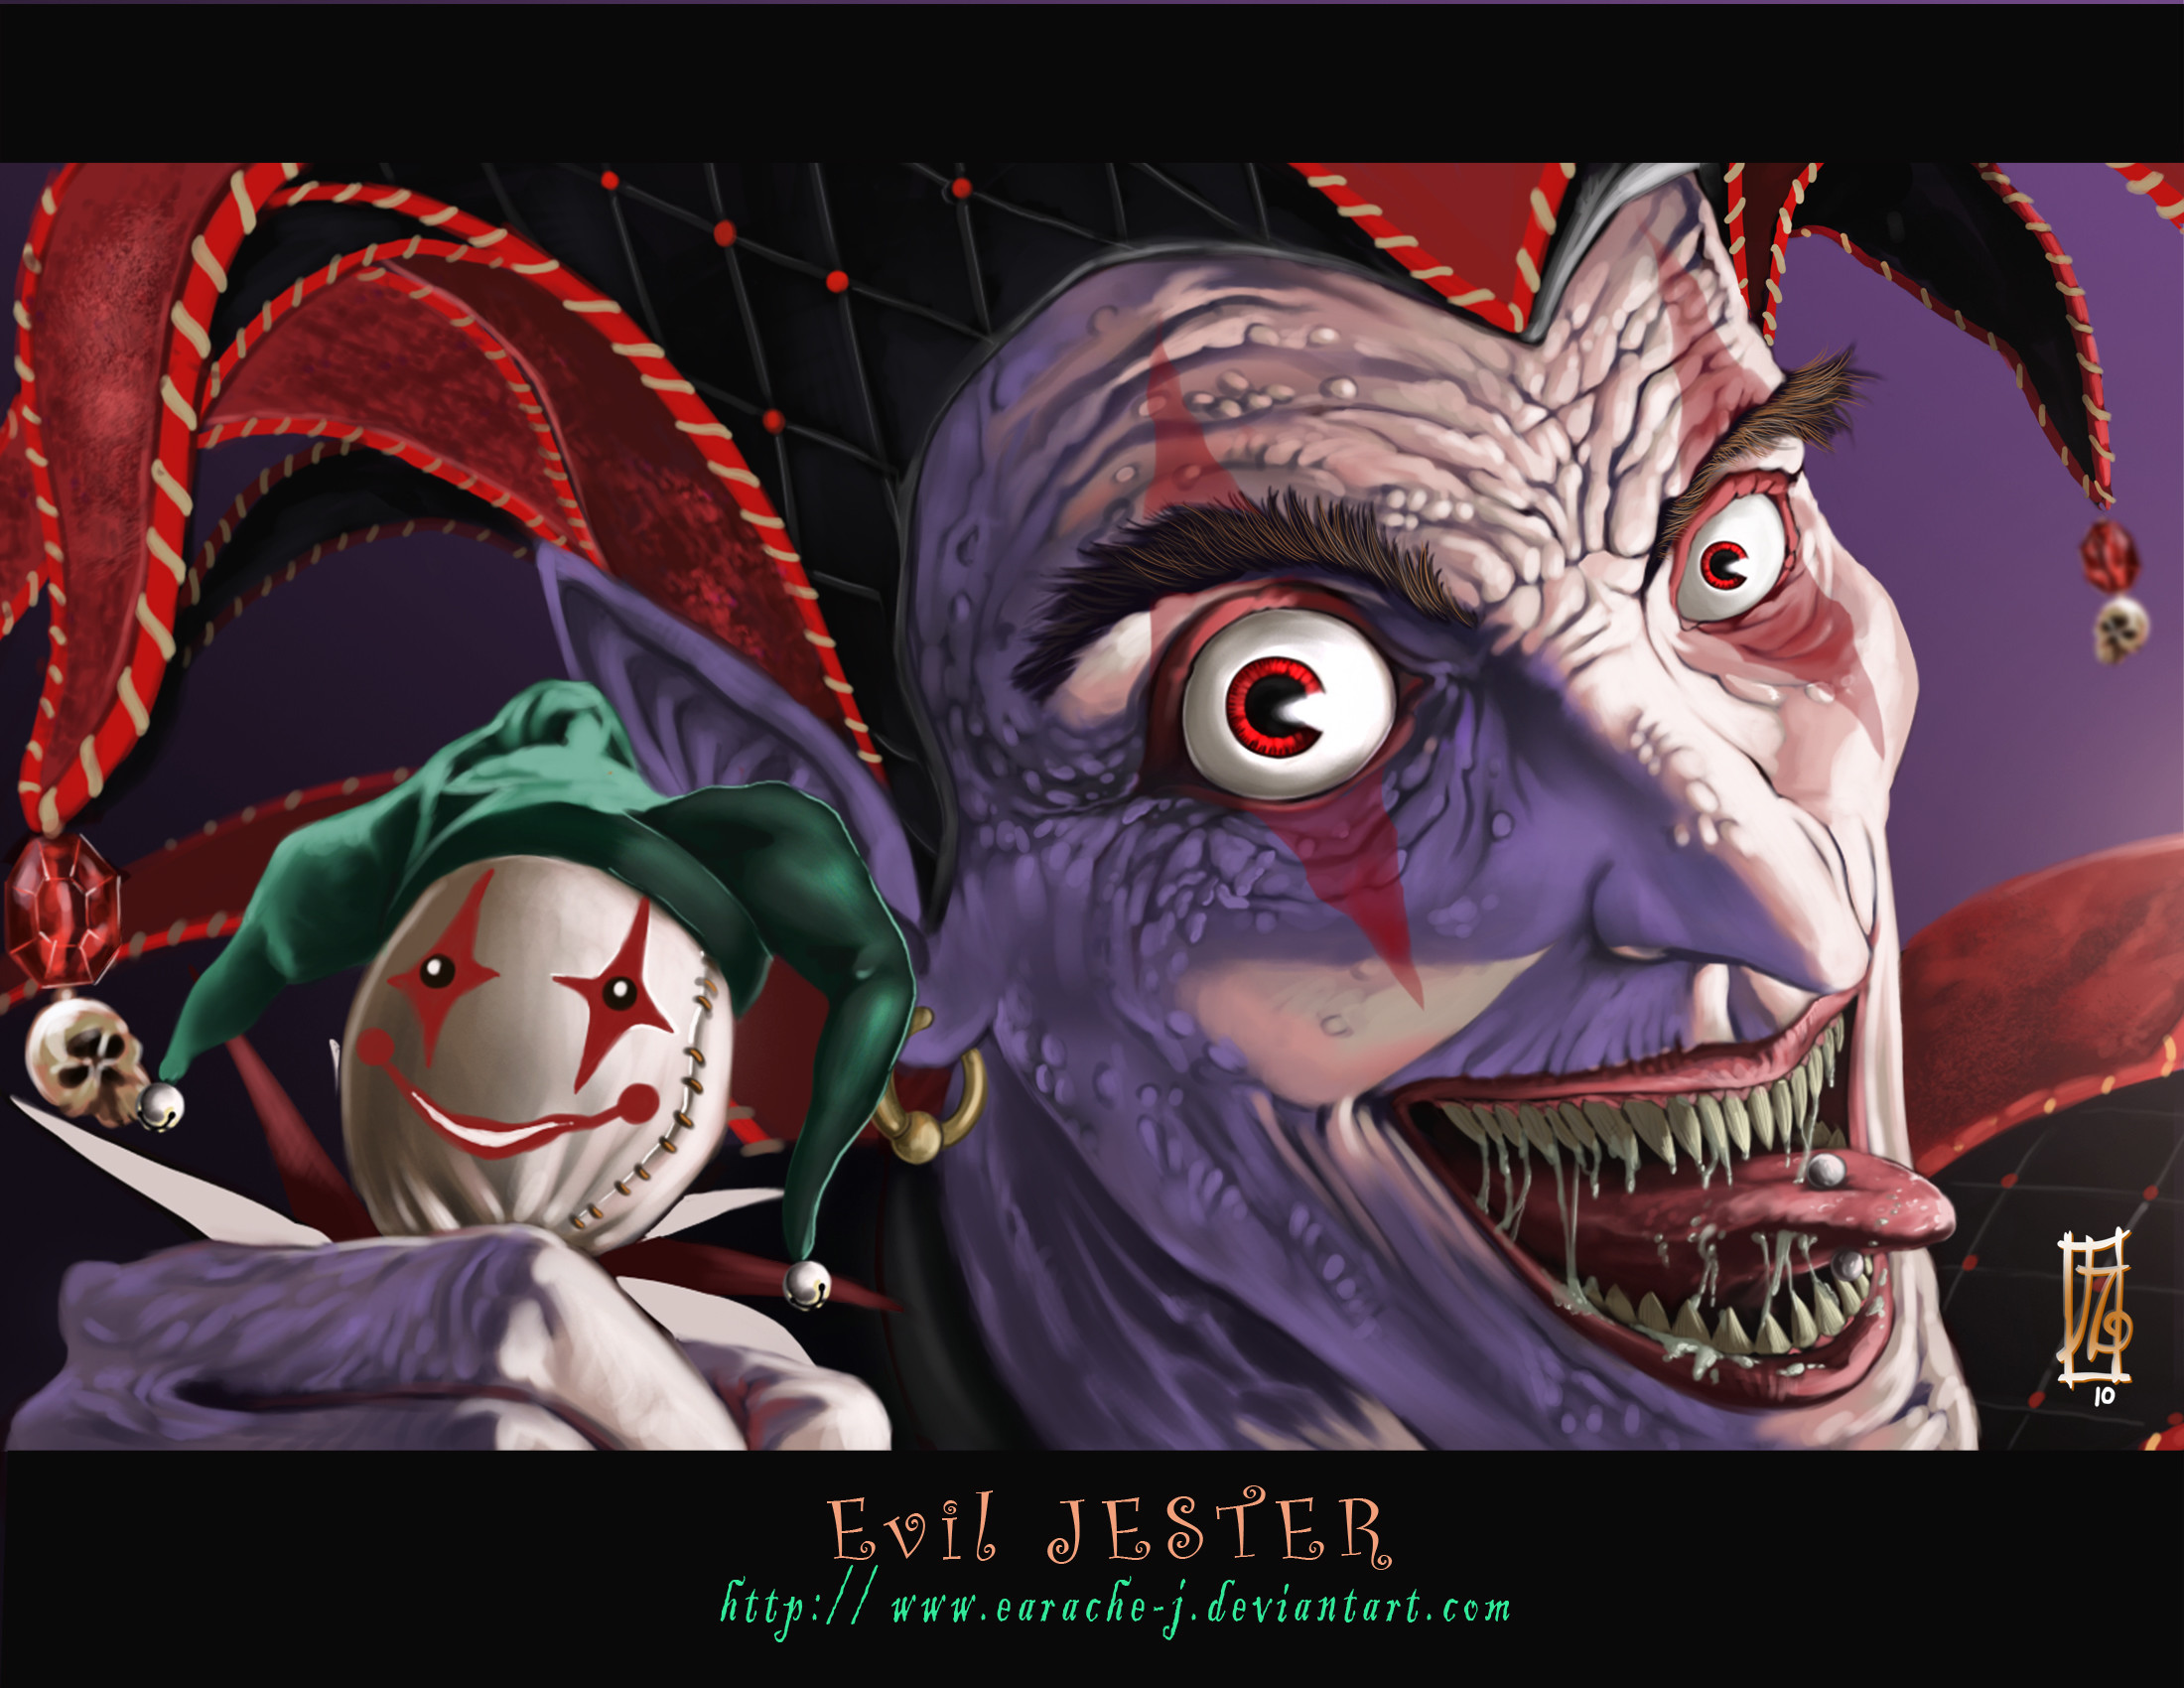 2200x1700 Evil Jester wallpaper from Clowns wallpapers